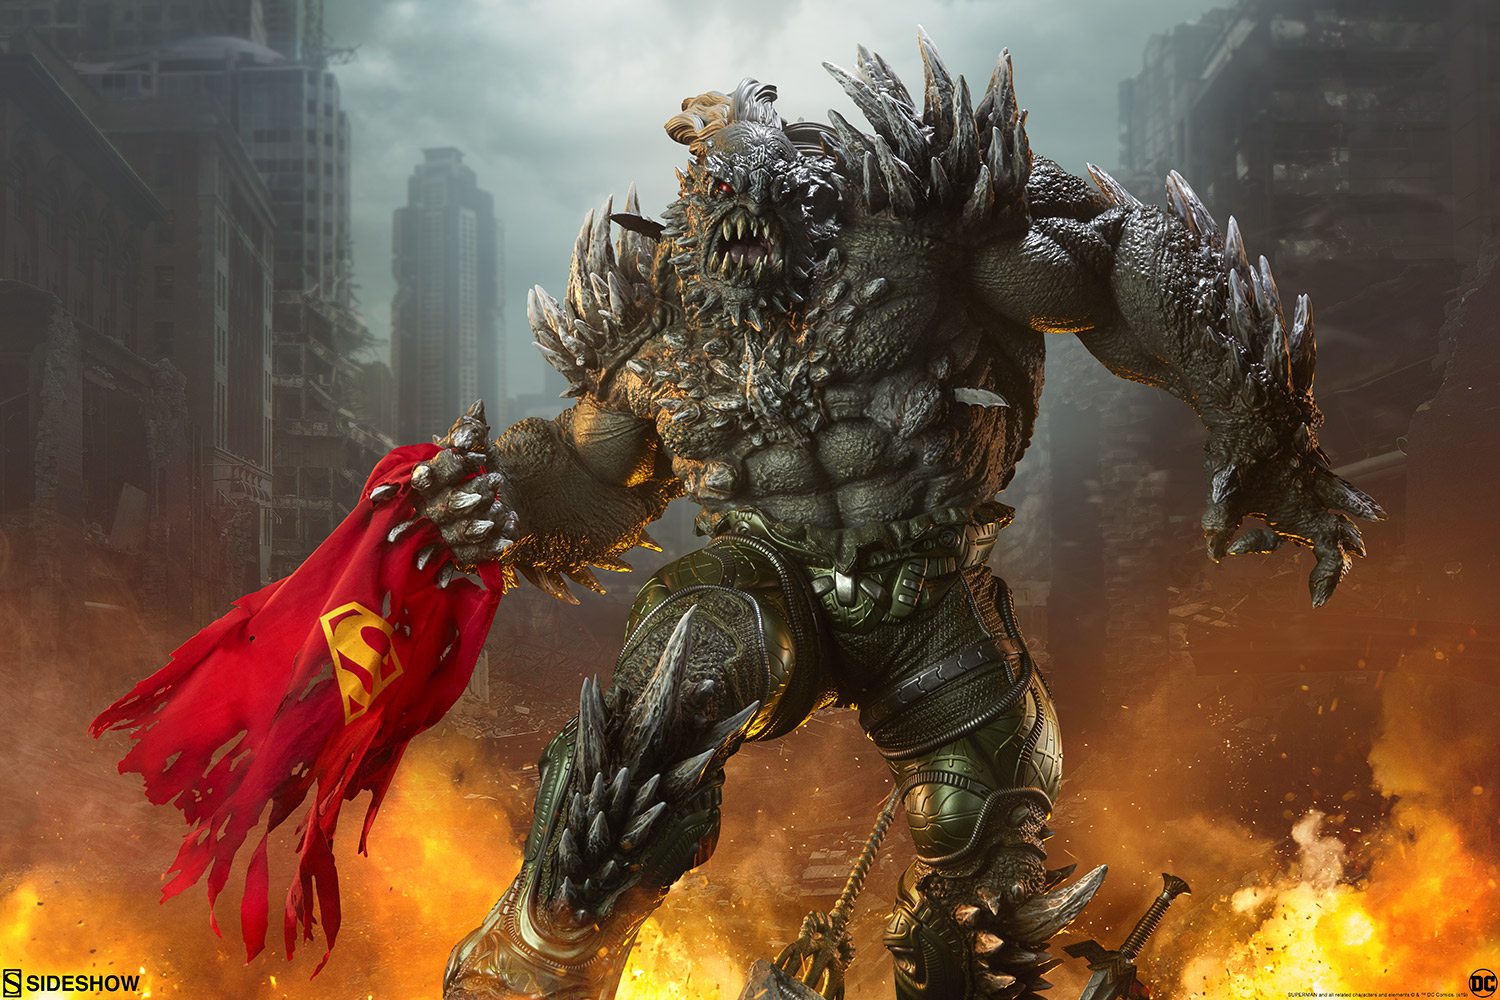 The Man of Steel; Doomsday is easily the deadliest villain in Superman with his super-ability to evolve and adapt to any environment.